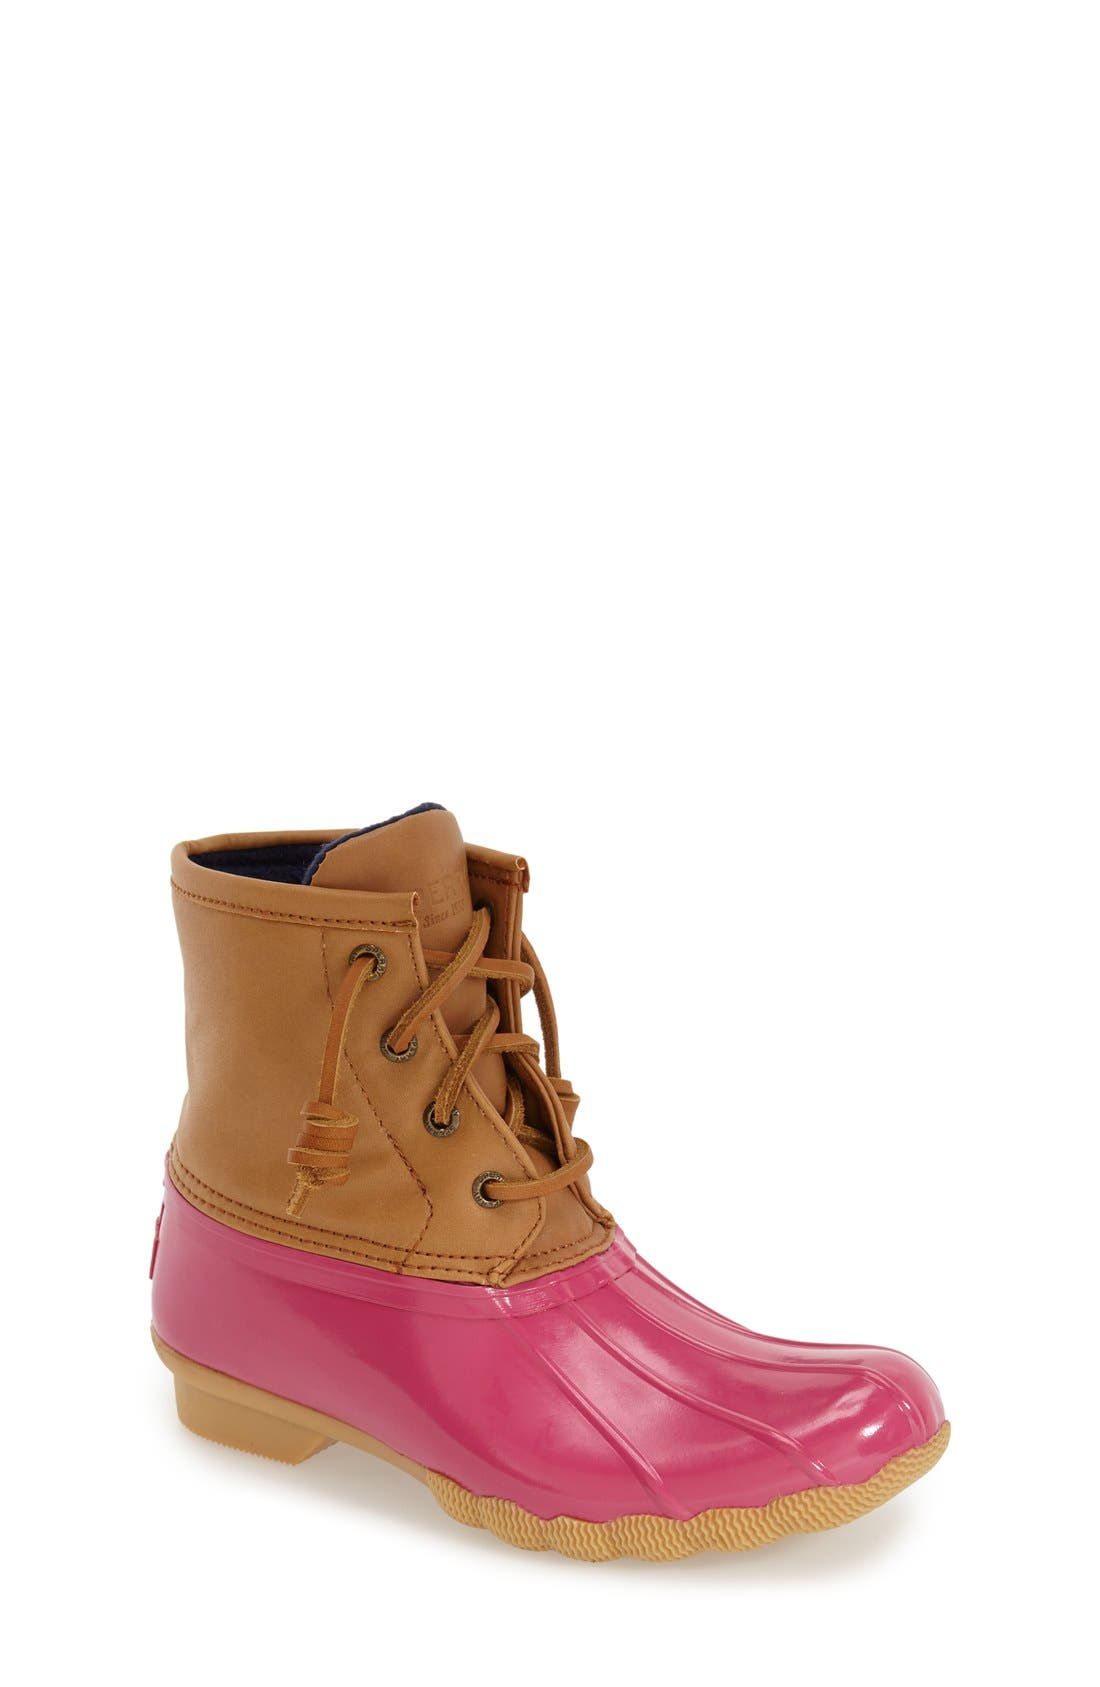 Sperry Kids Saltwater Duck Boot (Walker, Toddler, Little Kid & Big Kid)